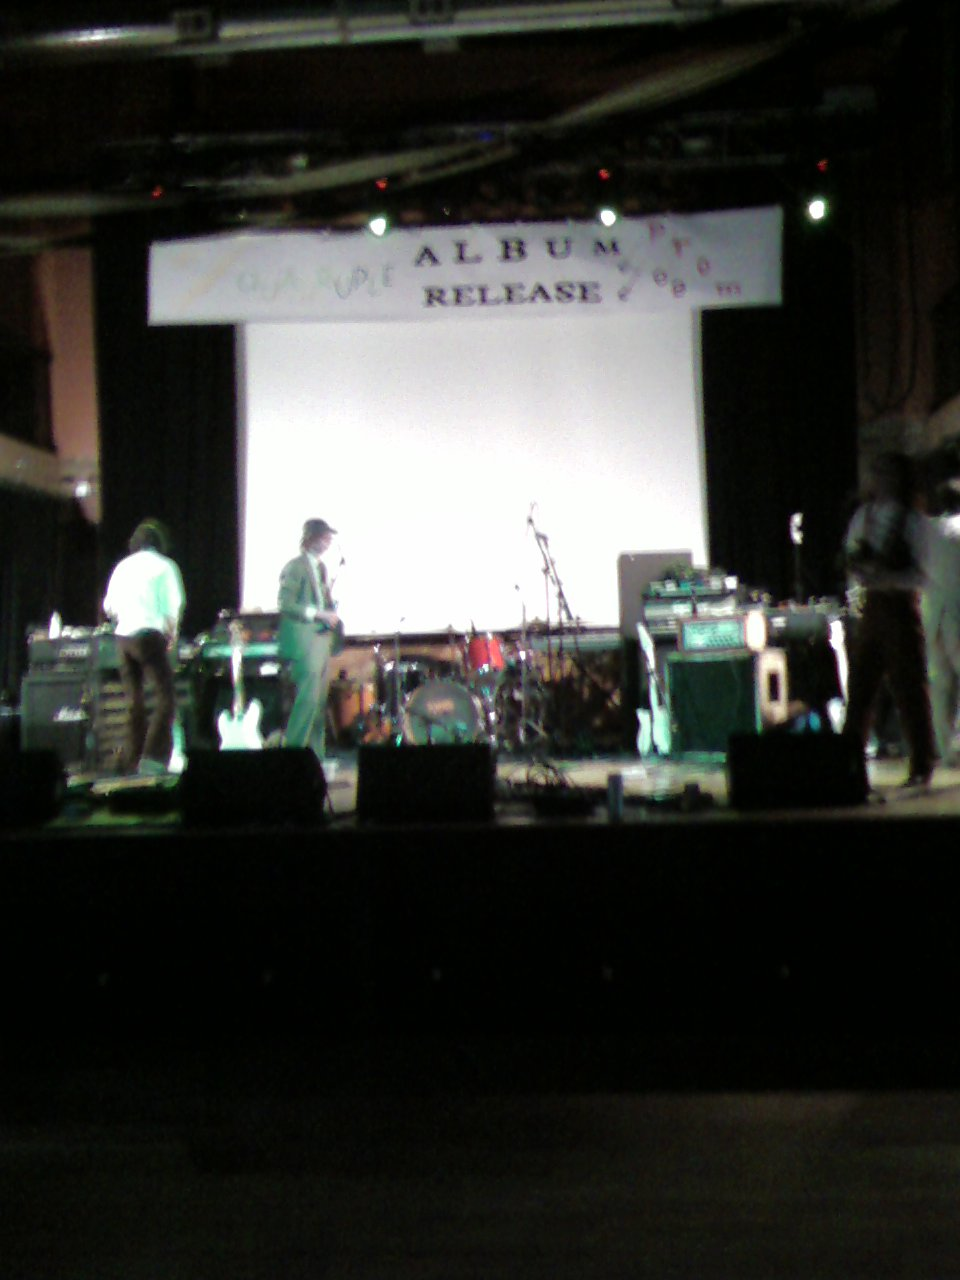 Album Release Prom stage setup